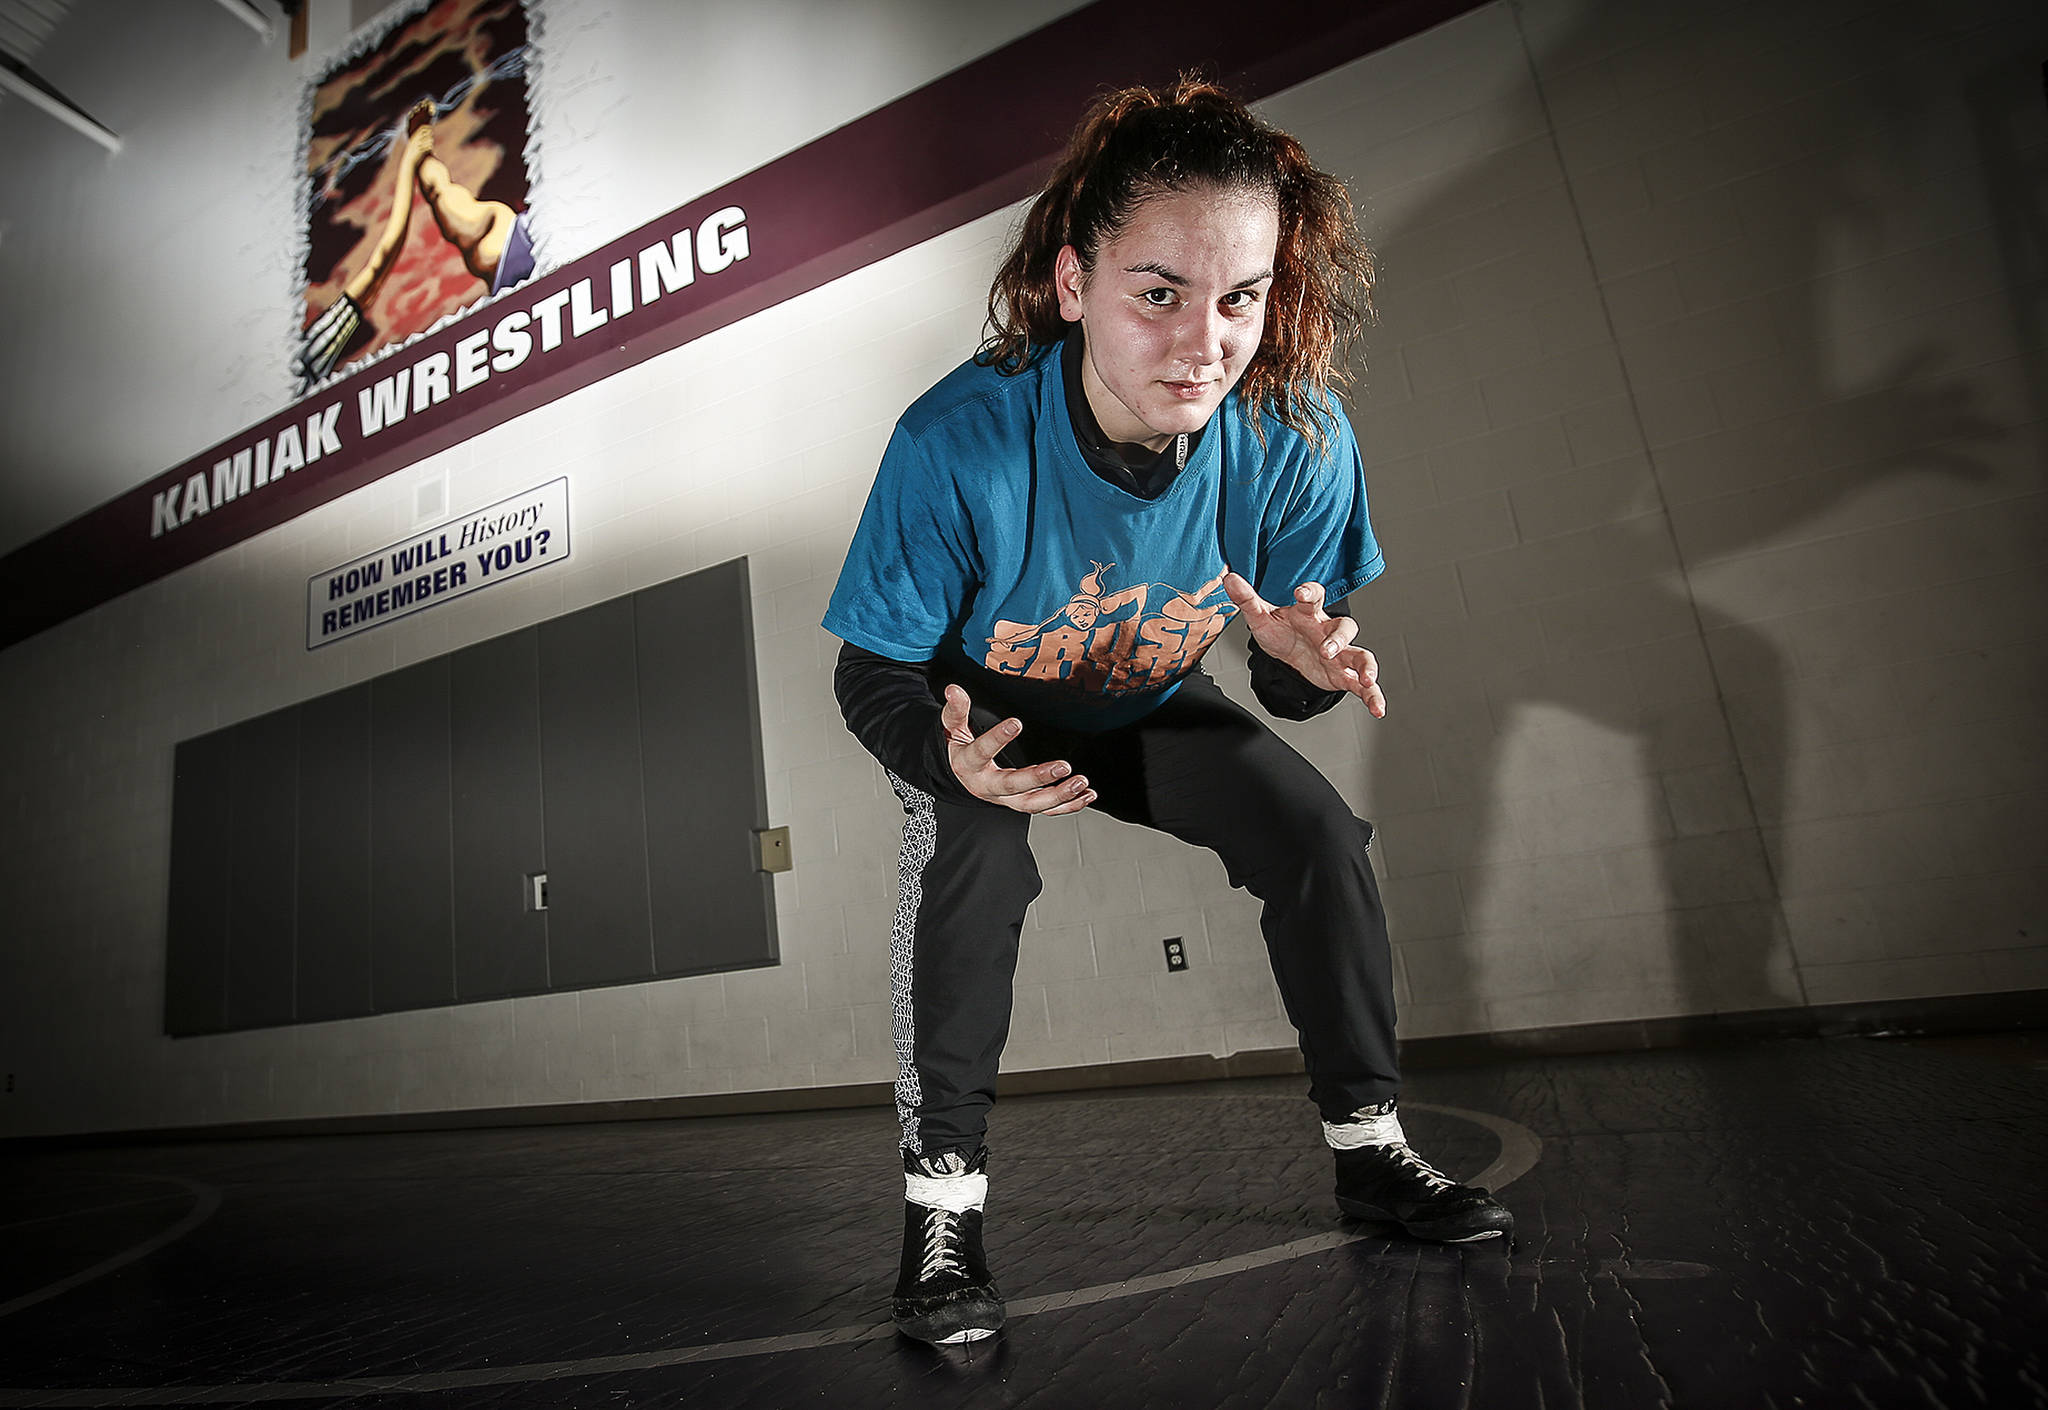 Kamiak senior Ally de la Cruz will look to defend her state wrestling title this weekend at Mat Classic XXX in Tacoma. (Ian Terry / The Herald)